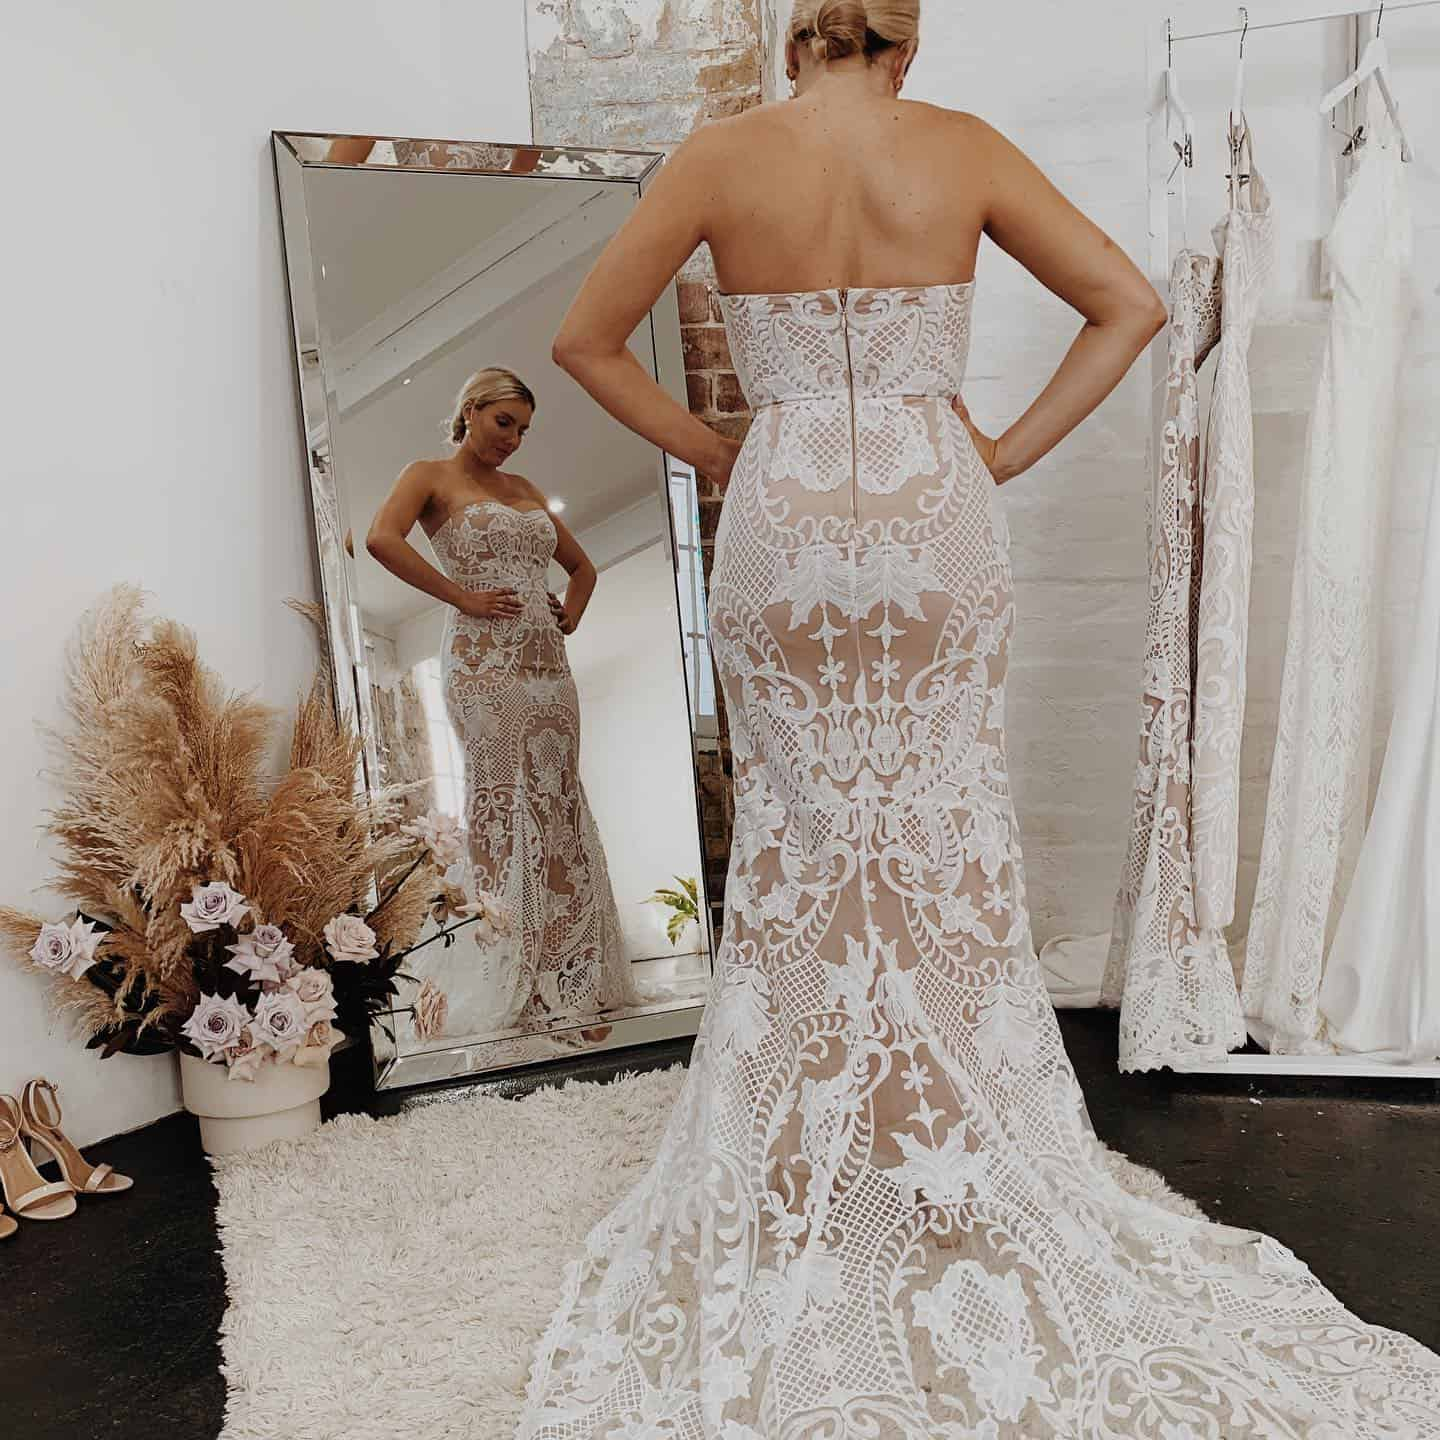 Wedding Ideas On A Tight Budget: Where To Buy A Cheap Affordable Wedding Dress On A Tight